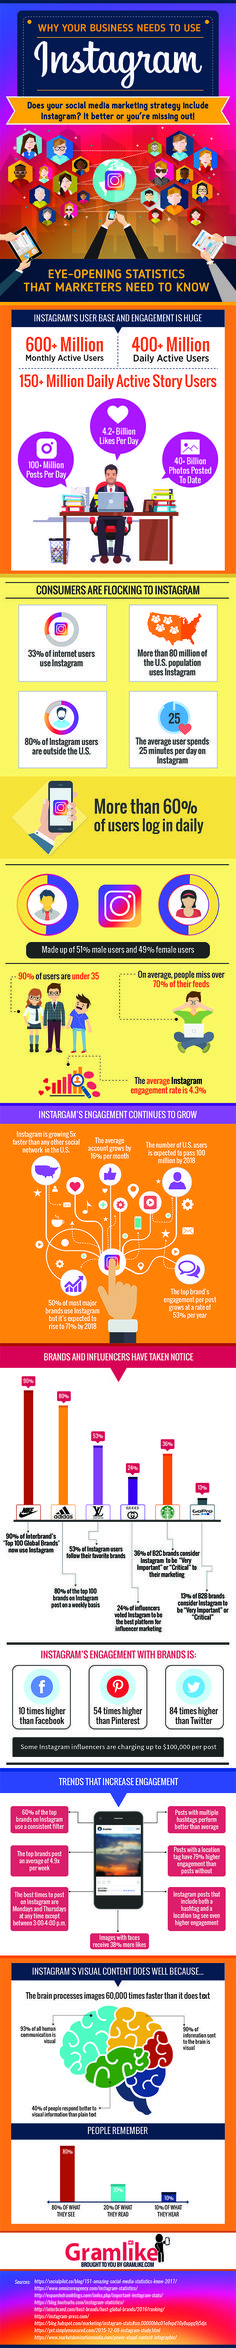 If you aren't using IG, you should be. Instagram Statistics Infographic